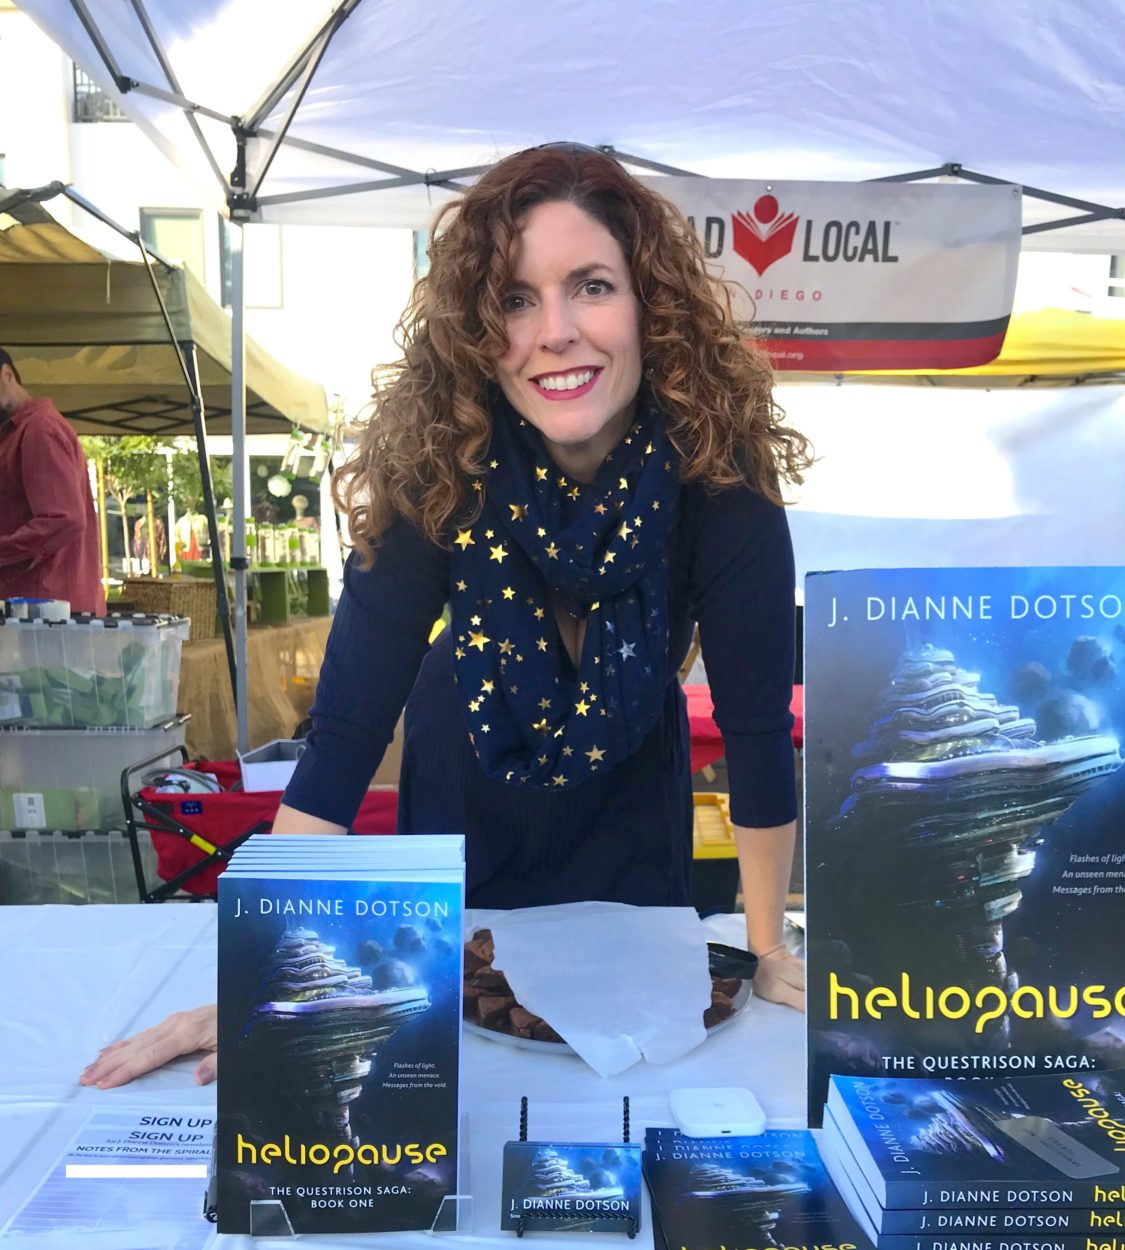 J. Dianne Dotson – Science Fiction and Fantasy Writer – A Read Local Book Signing